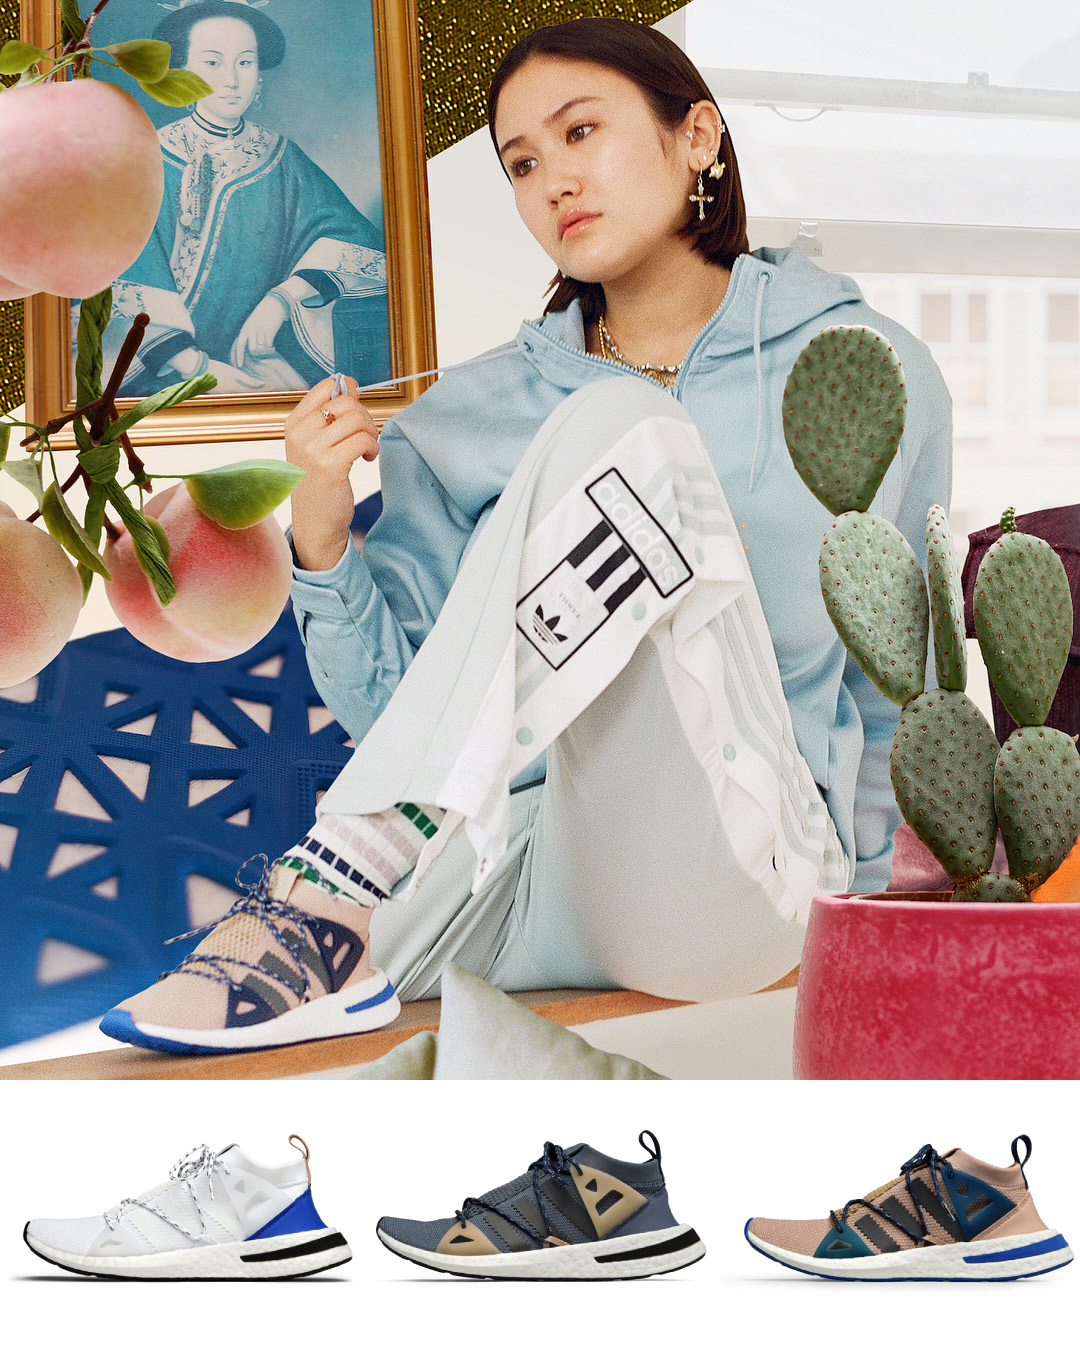 adidas arkyn outfit